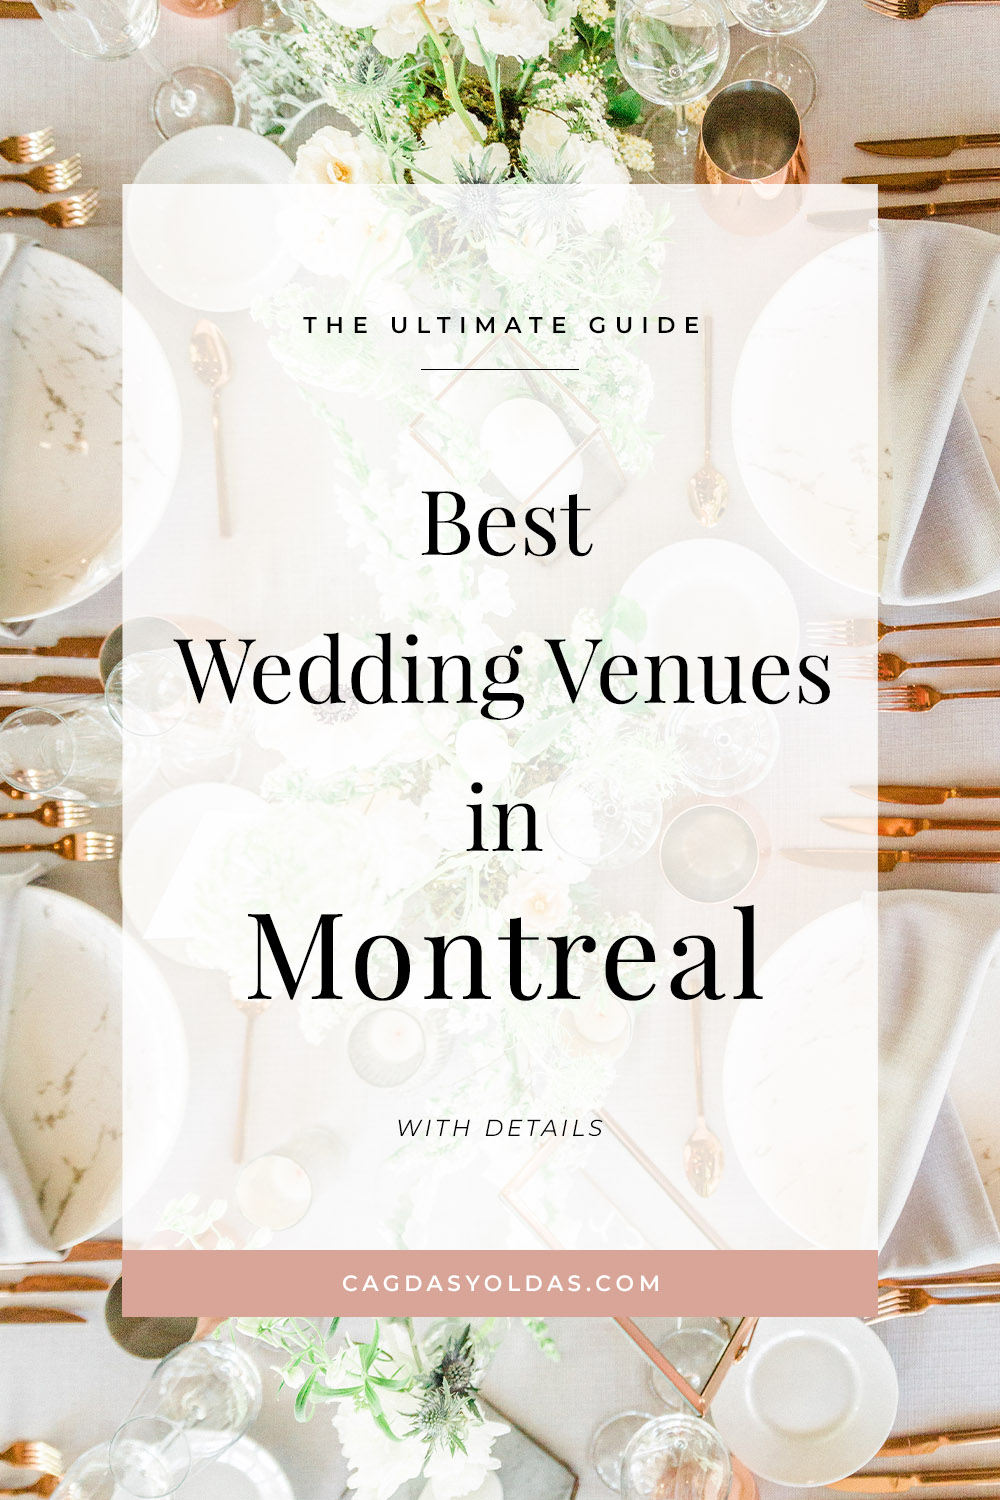 A list of the best wedding venues in Motreal, Quebec and the surrounding areas. Check out this post for inspirational photos, information, and venue contact info!